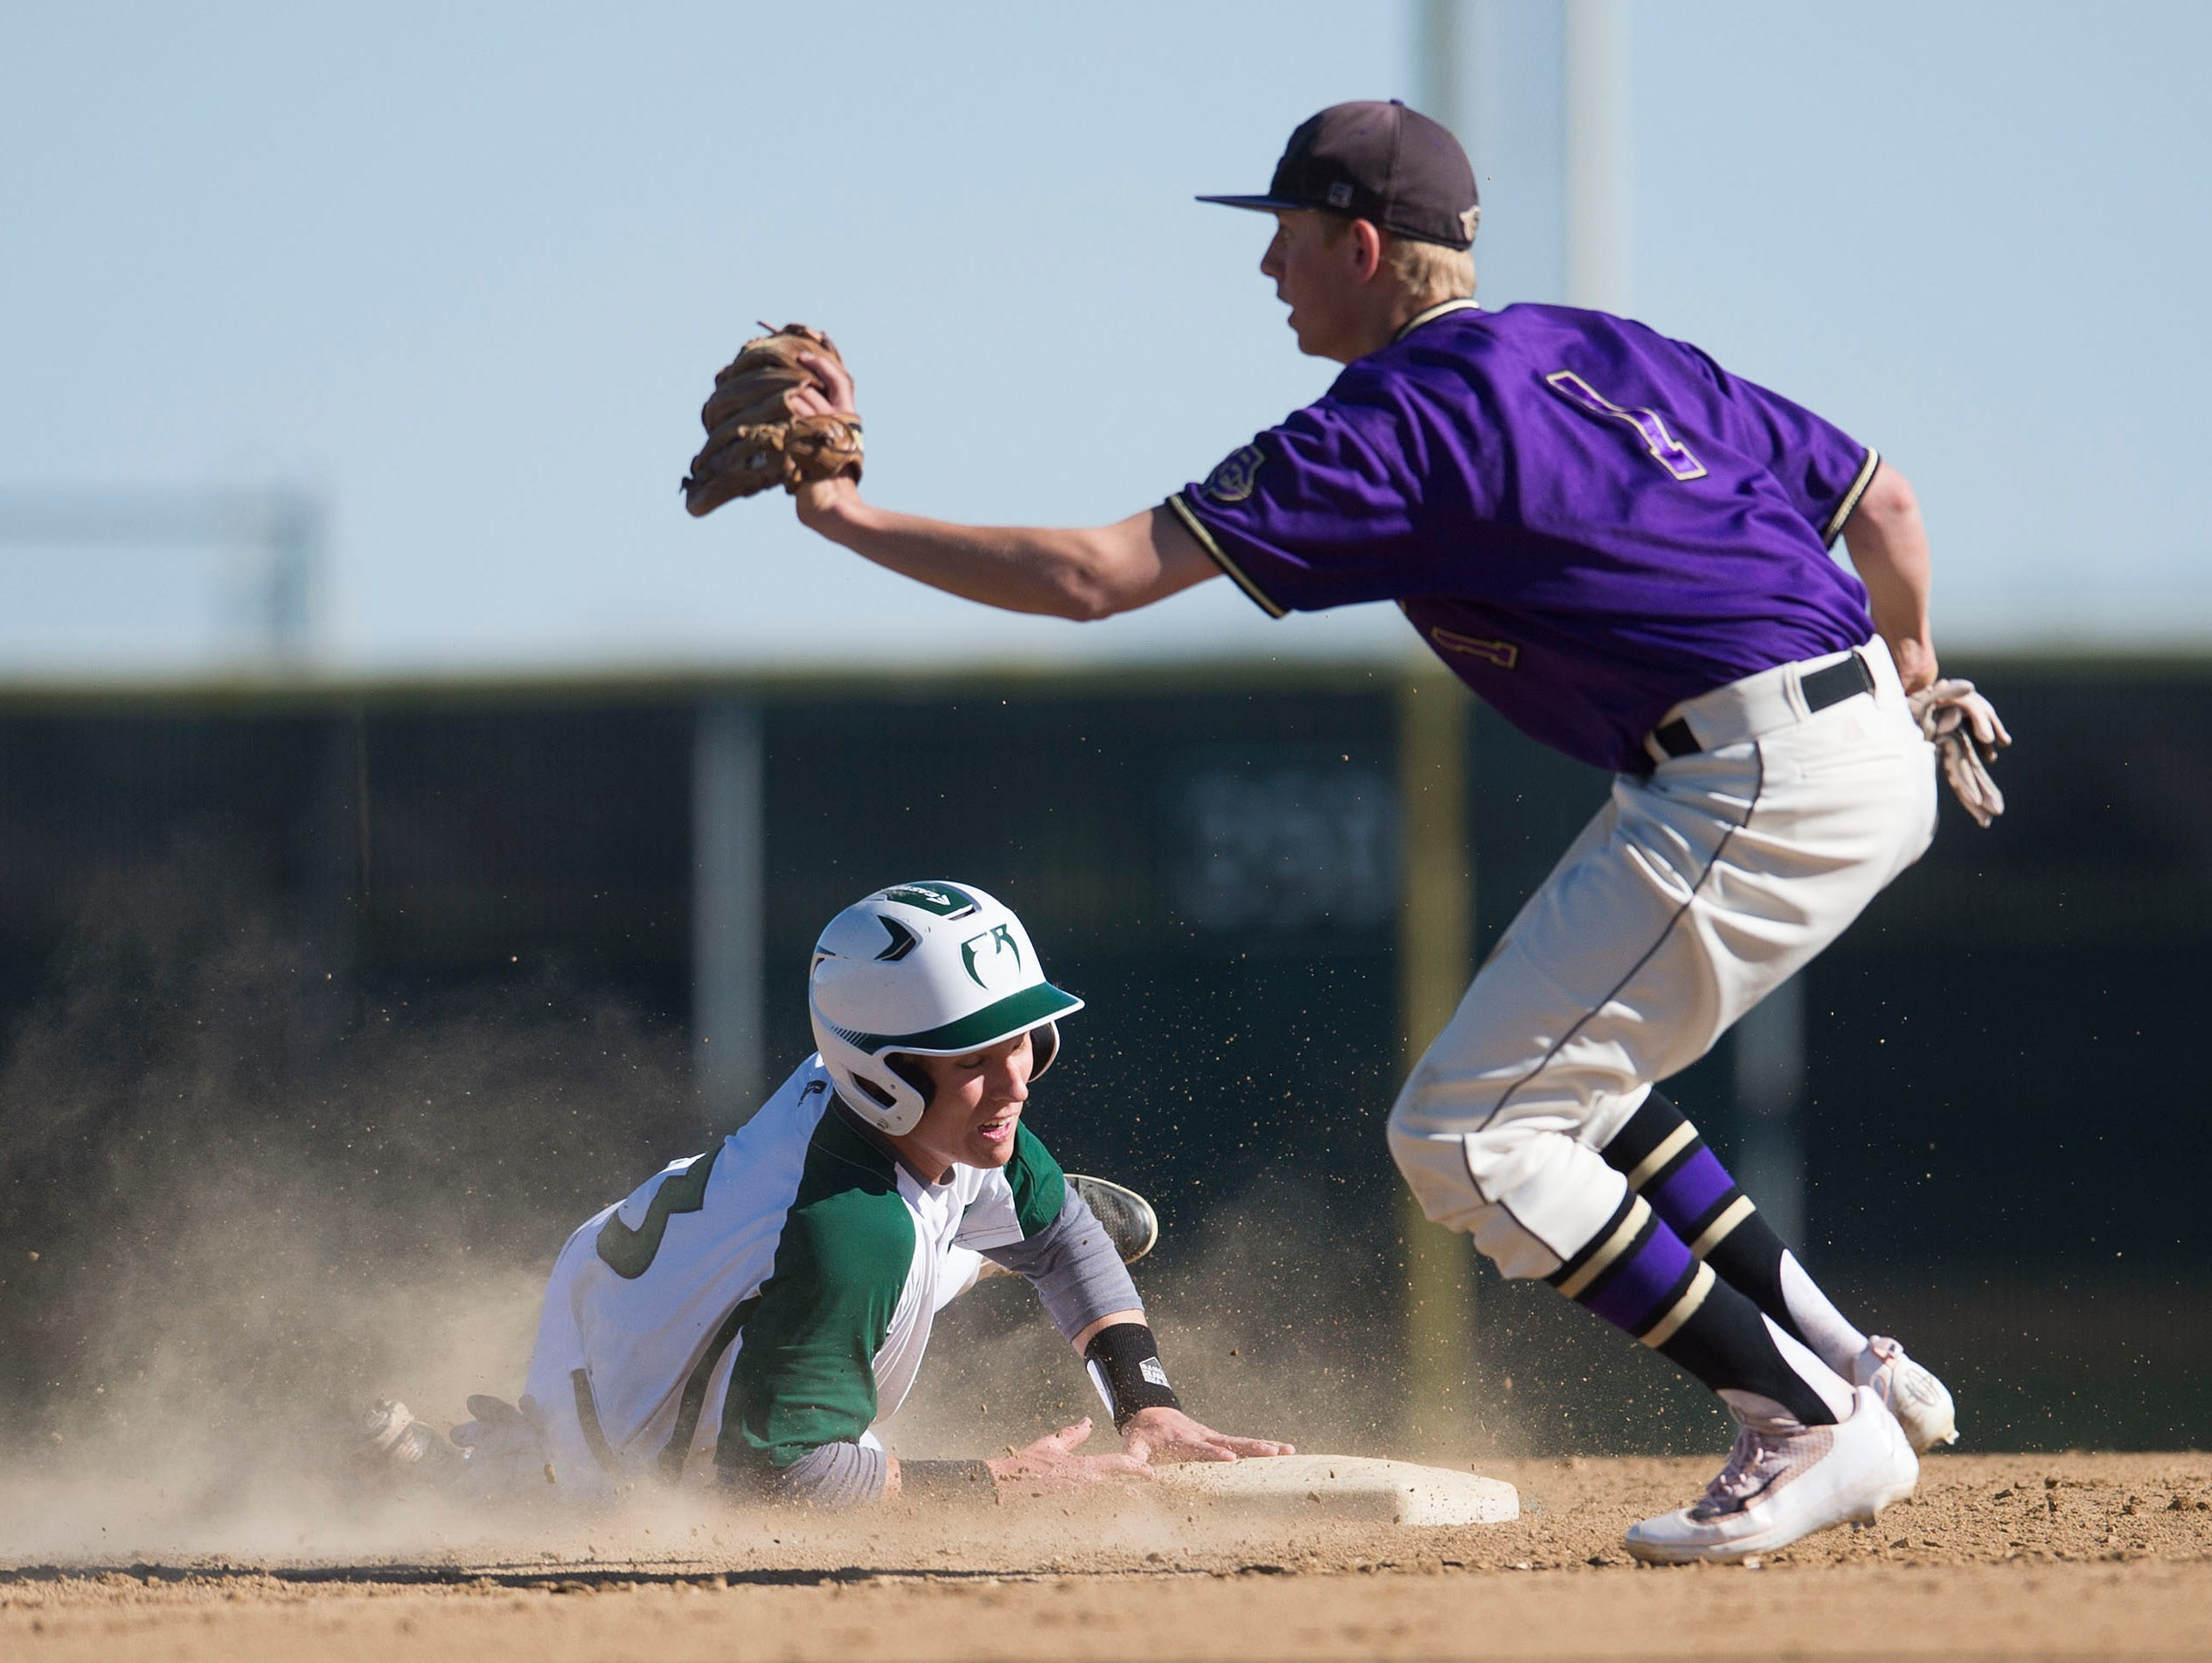 Fort Collins second baseman Jacob Moyer tags out Fossil Ridge baserunner Evan Bergerson as he slides into the base during a game at Fossil Ridge High School Tuesday, May 3, 2016. The SaberCats pulled ahead of the Lambkins to win the game 8-7.